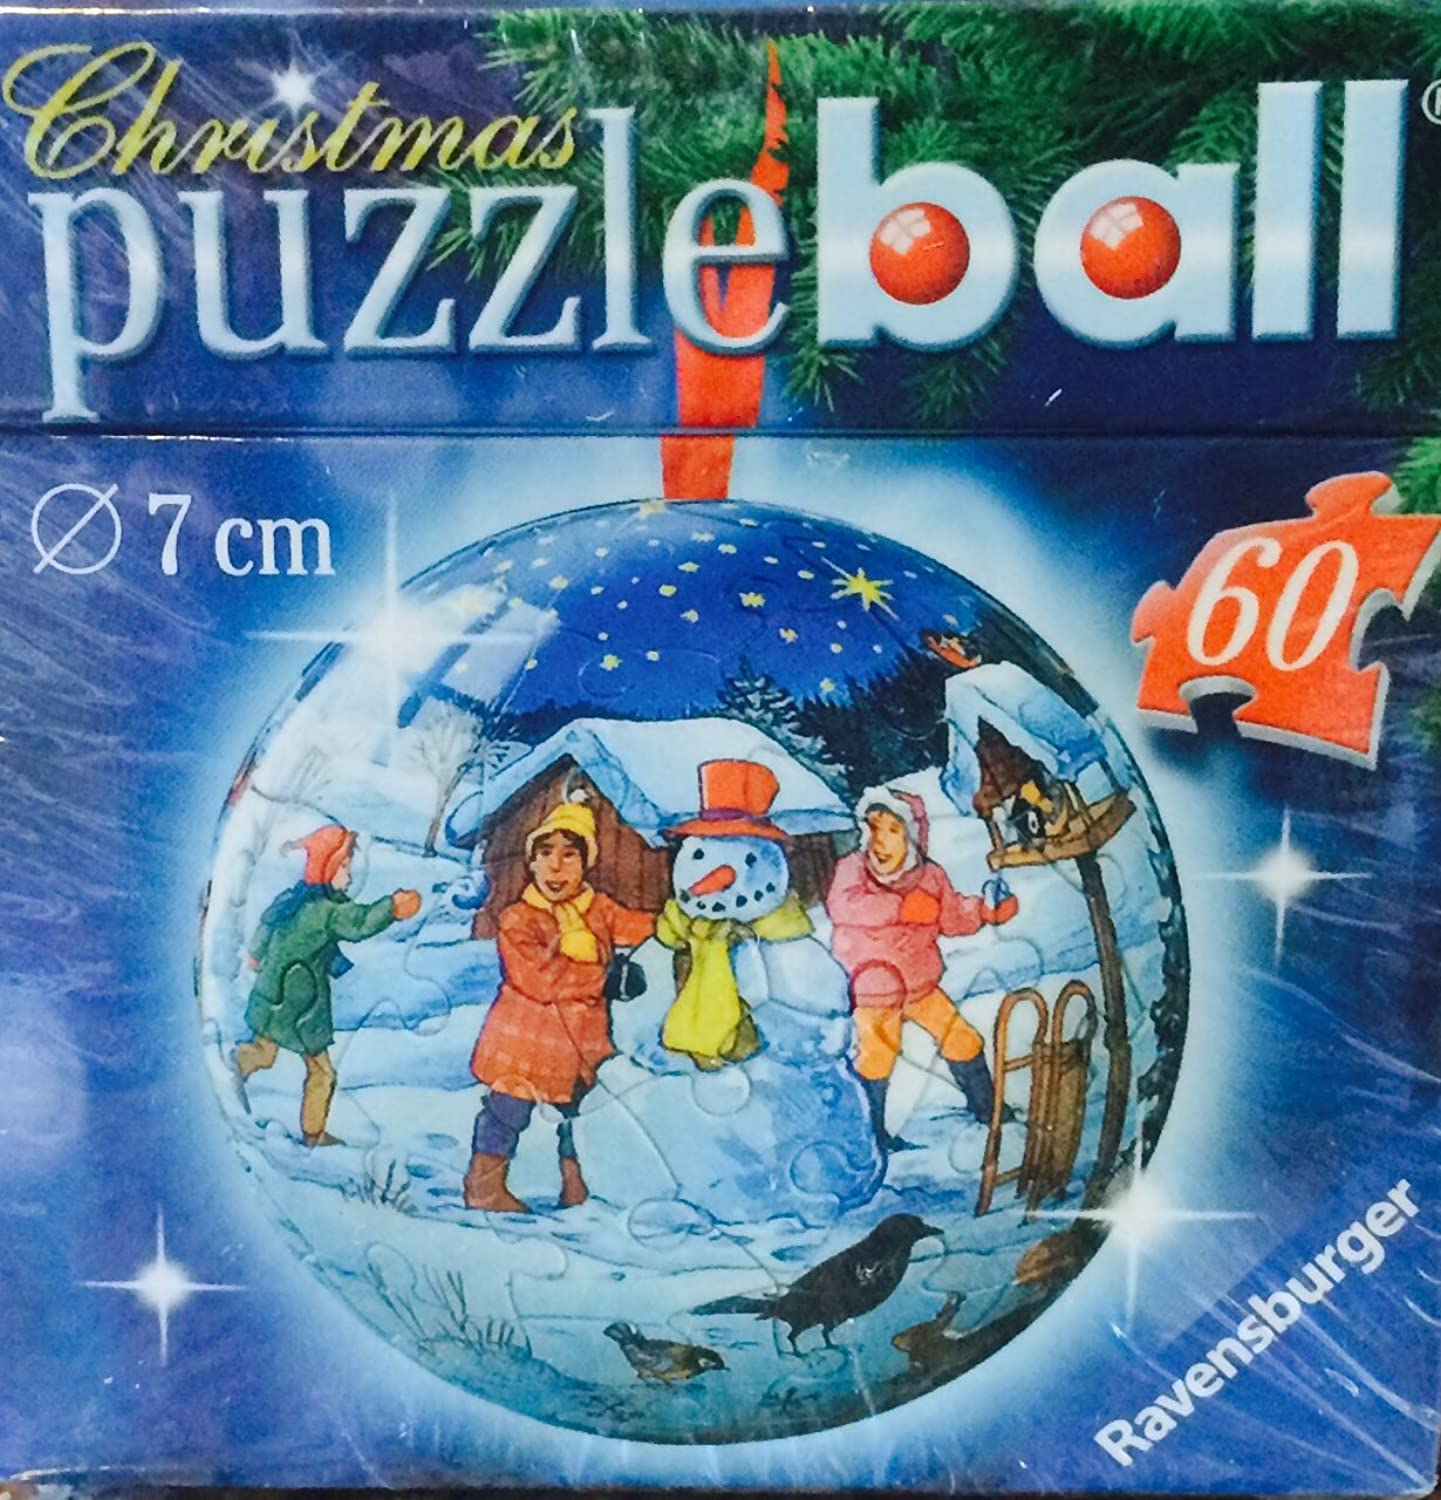 60 Piece 3d Holiday Puzzleball by Ravensburger